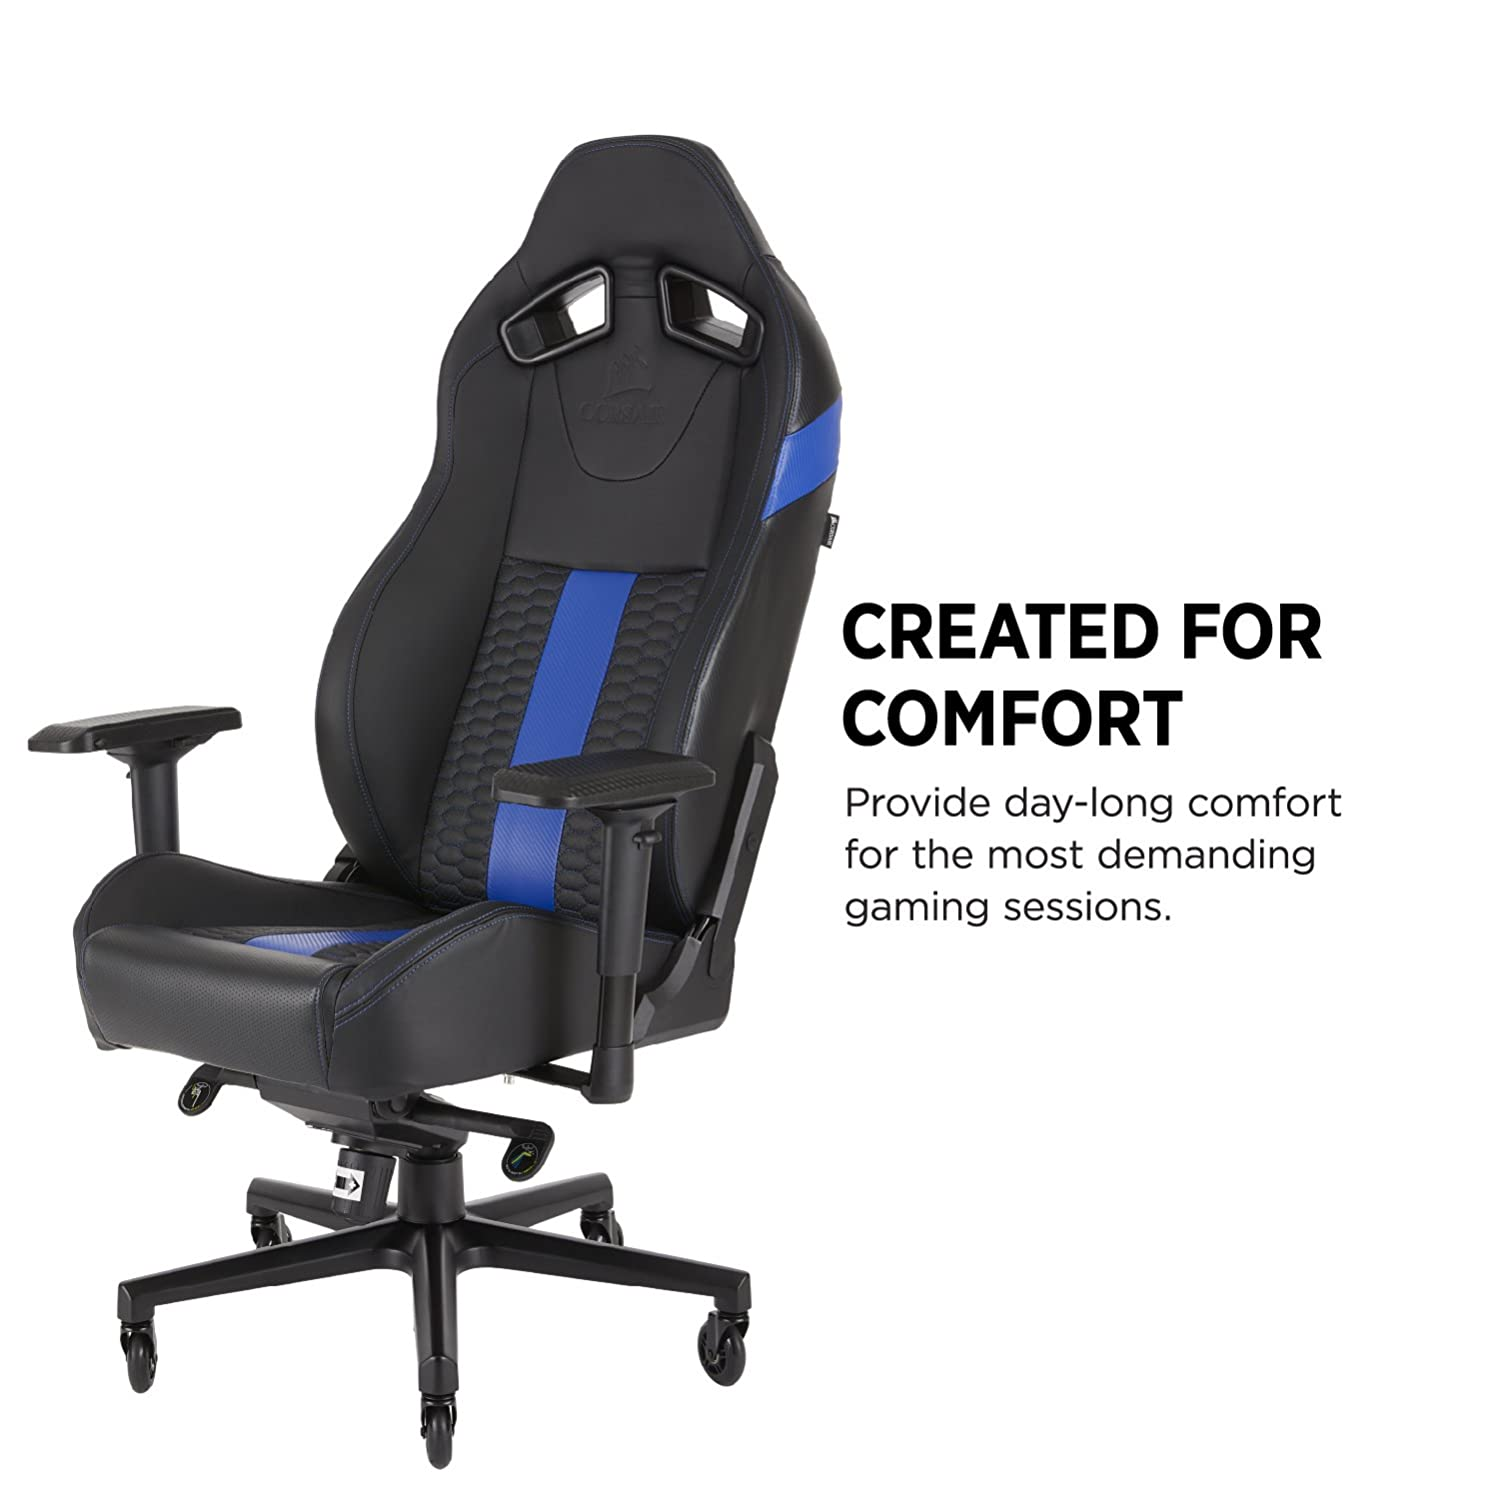 Corsair T2 Road Warrior Silla para Juegos, Polipiel, Azul, 88x69.5x37 cm: Amazon.es: Informática